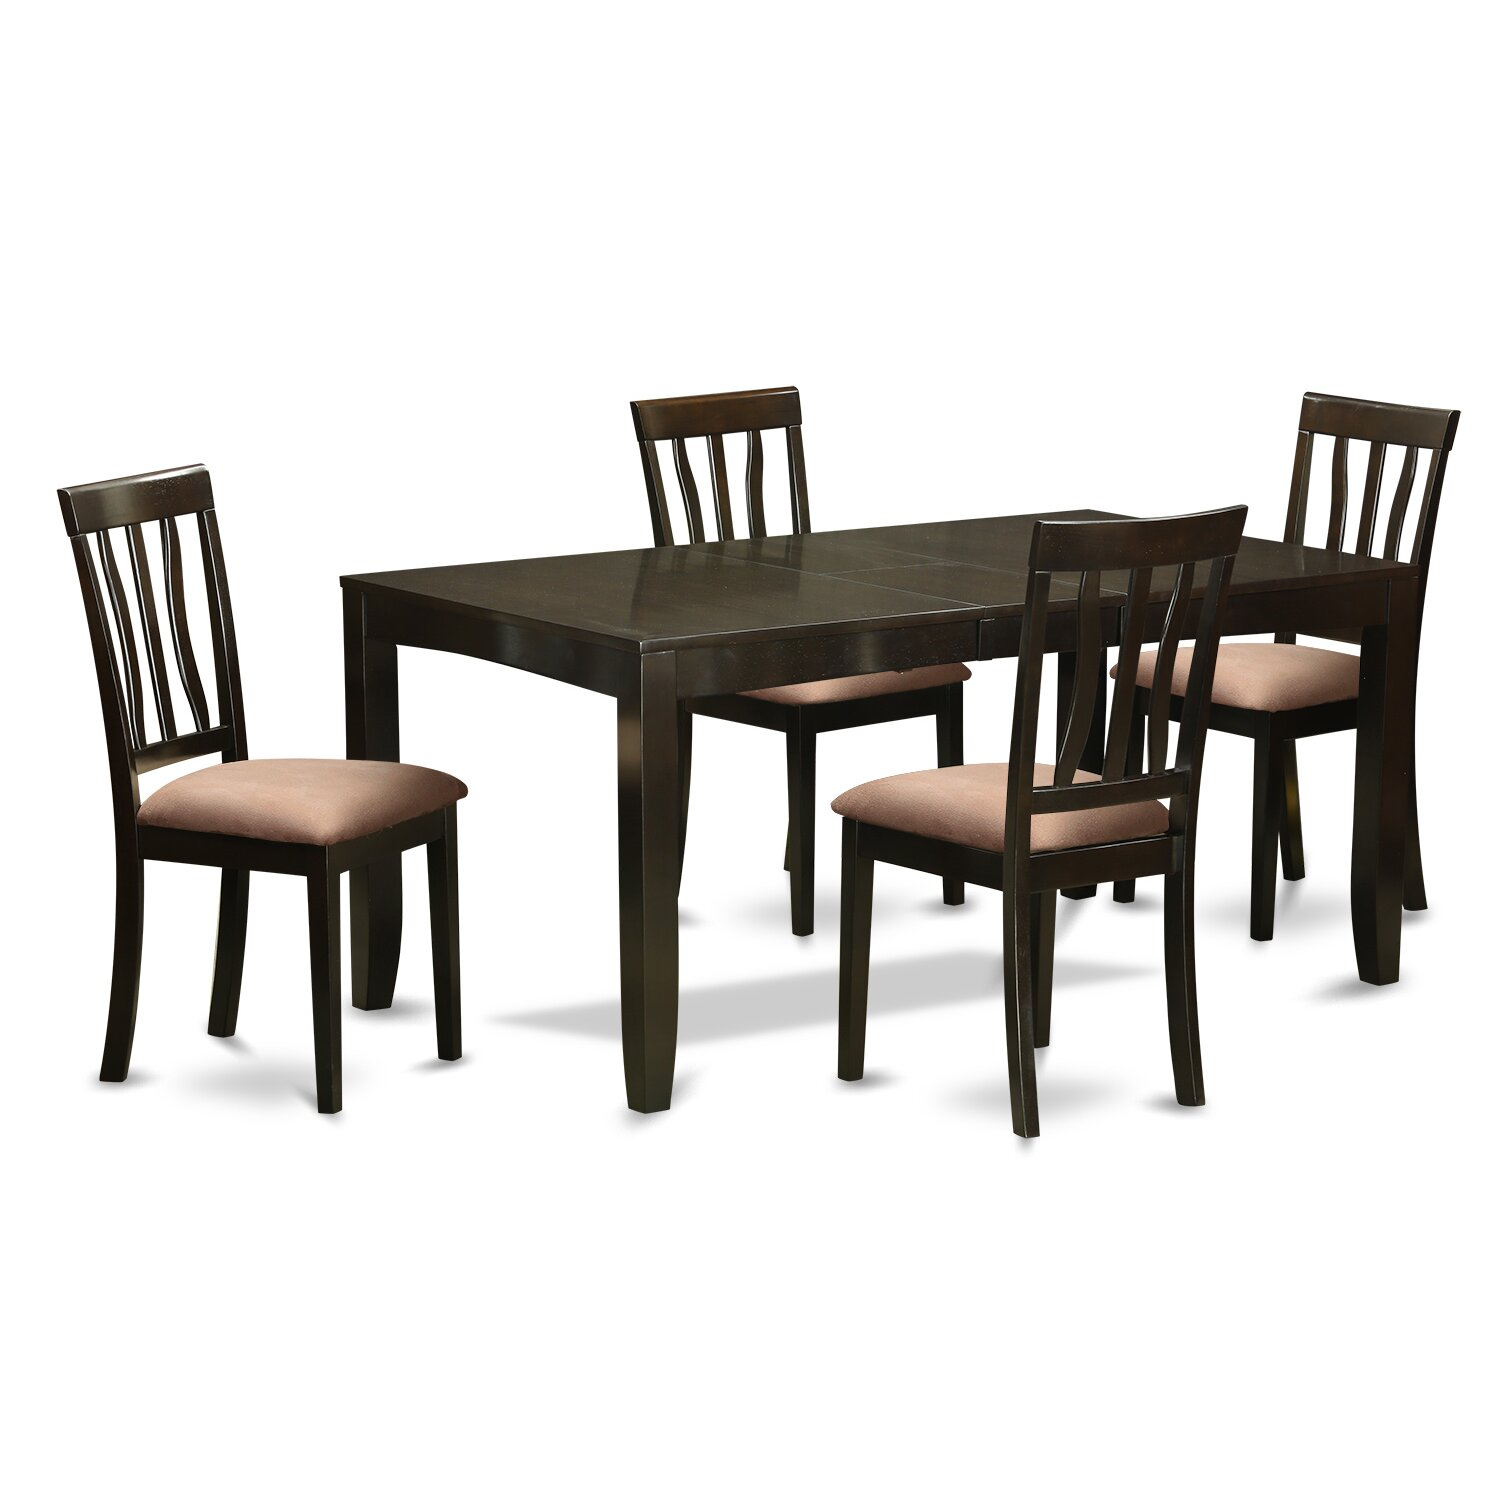 Wooden importers lynfield 5 piece dining set wayfair for Kitchenette sets furniture